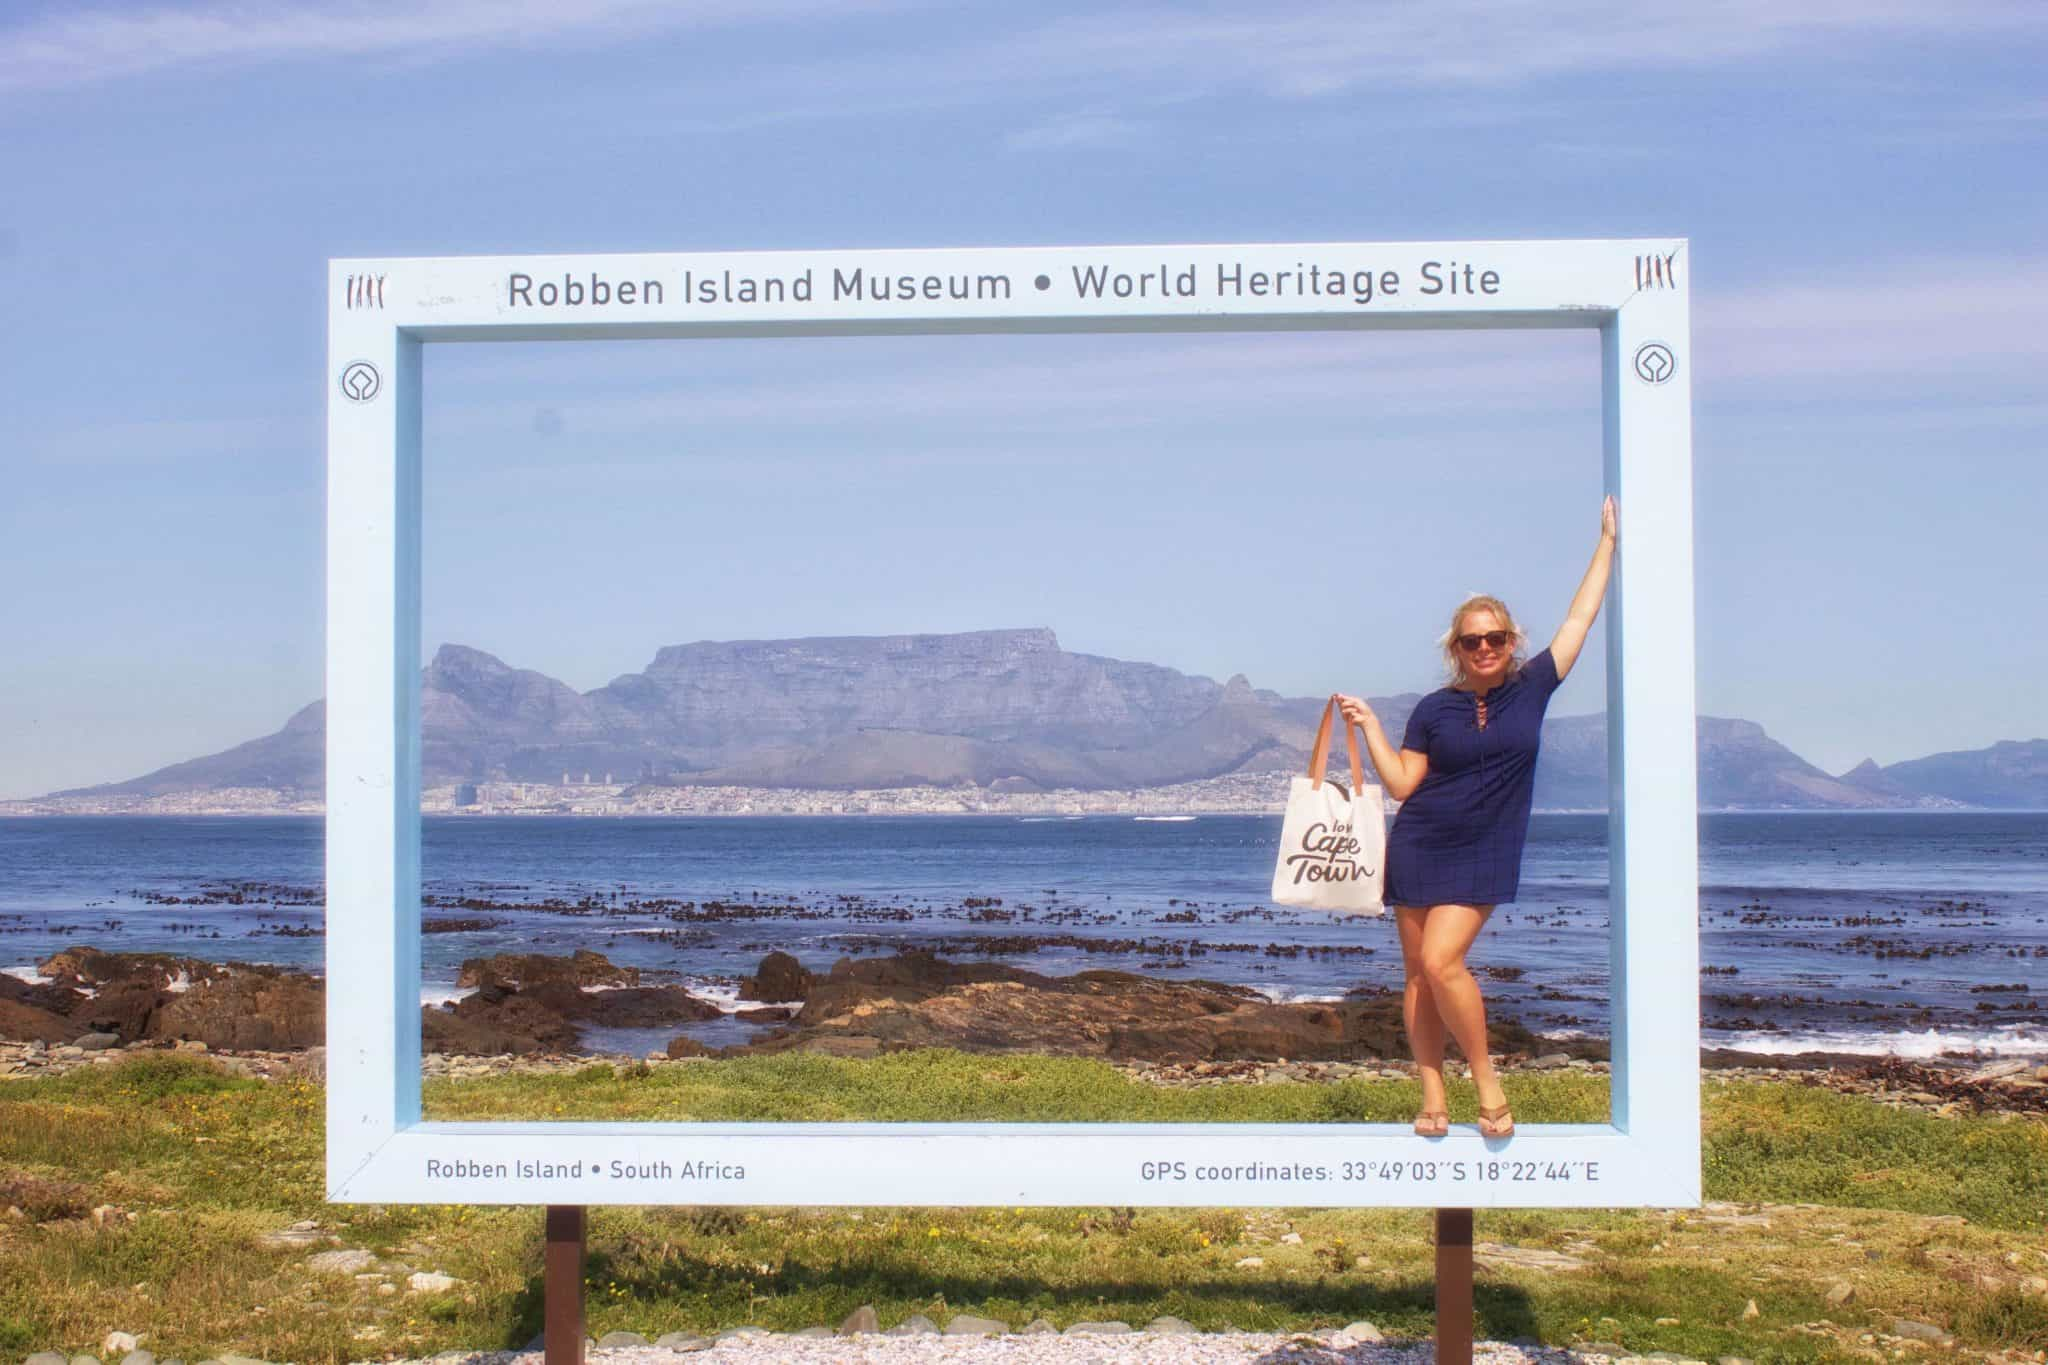 A Day at Robben Island